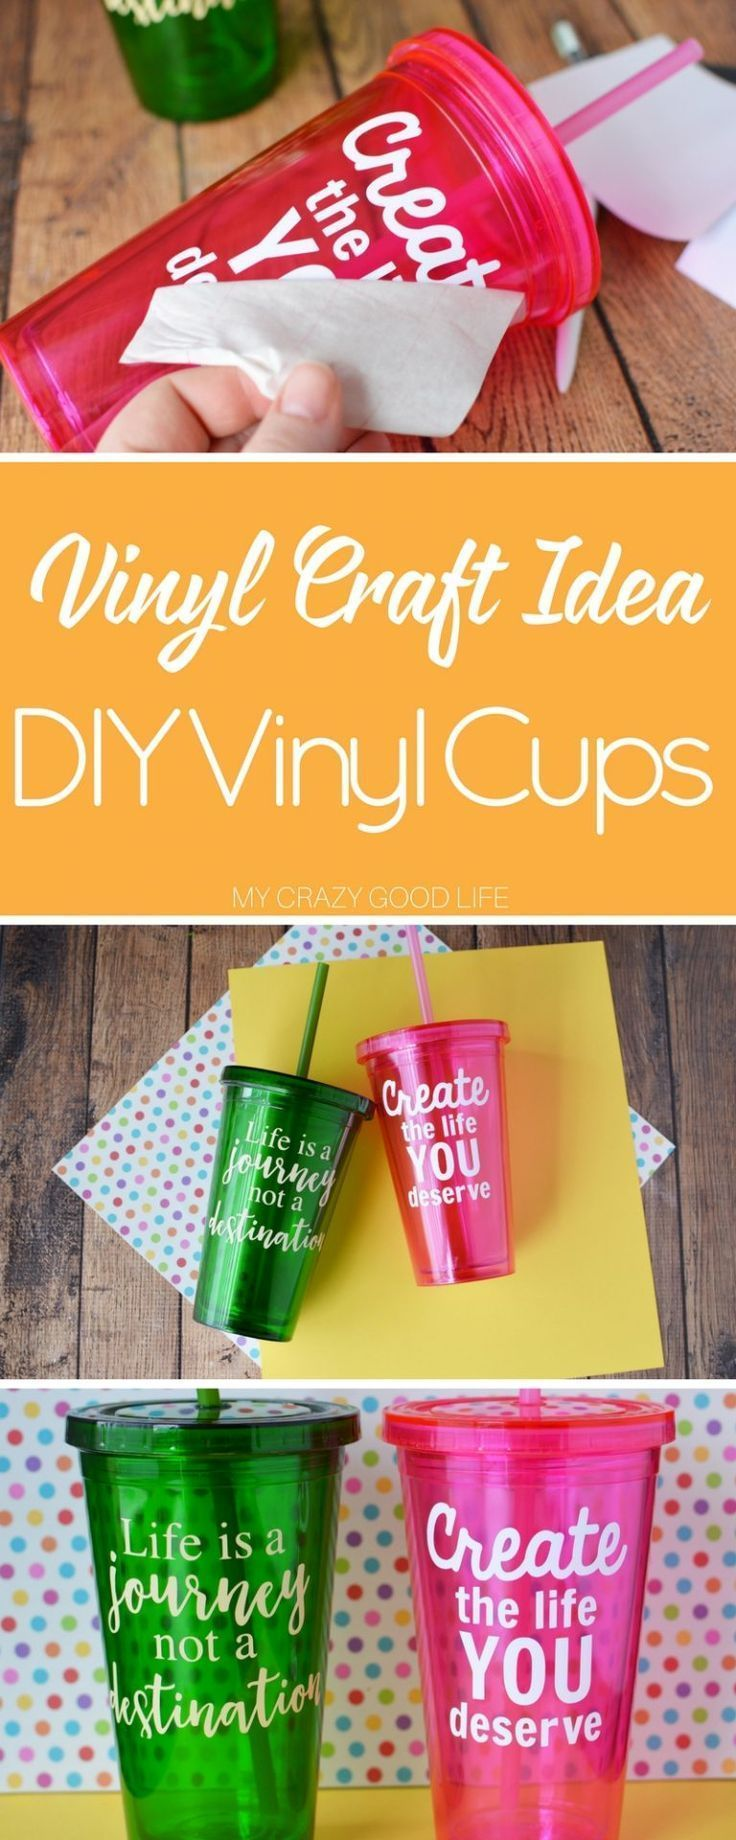 Vinyl Craft Idea | DIY Vinyl Cups - #Craft #Cups #DIY #Idea #vinyl